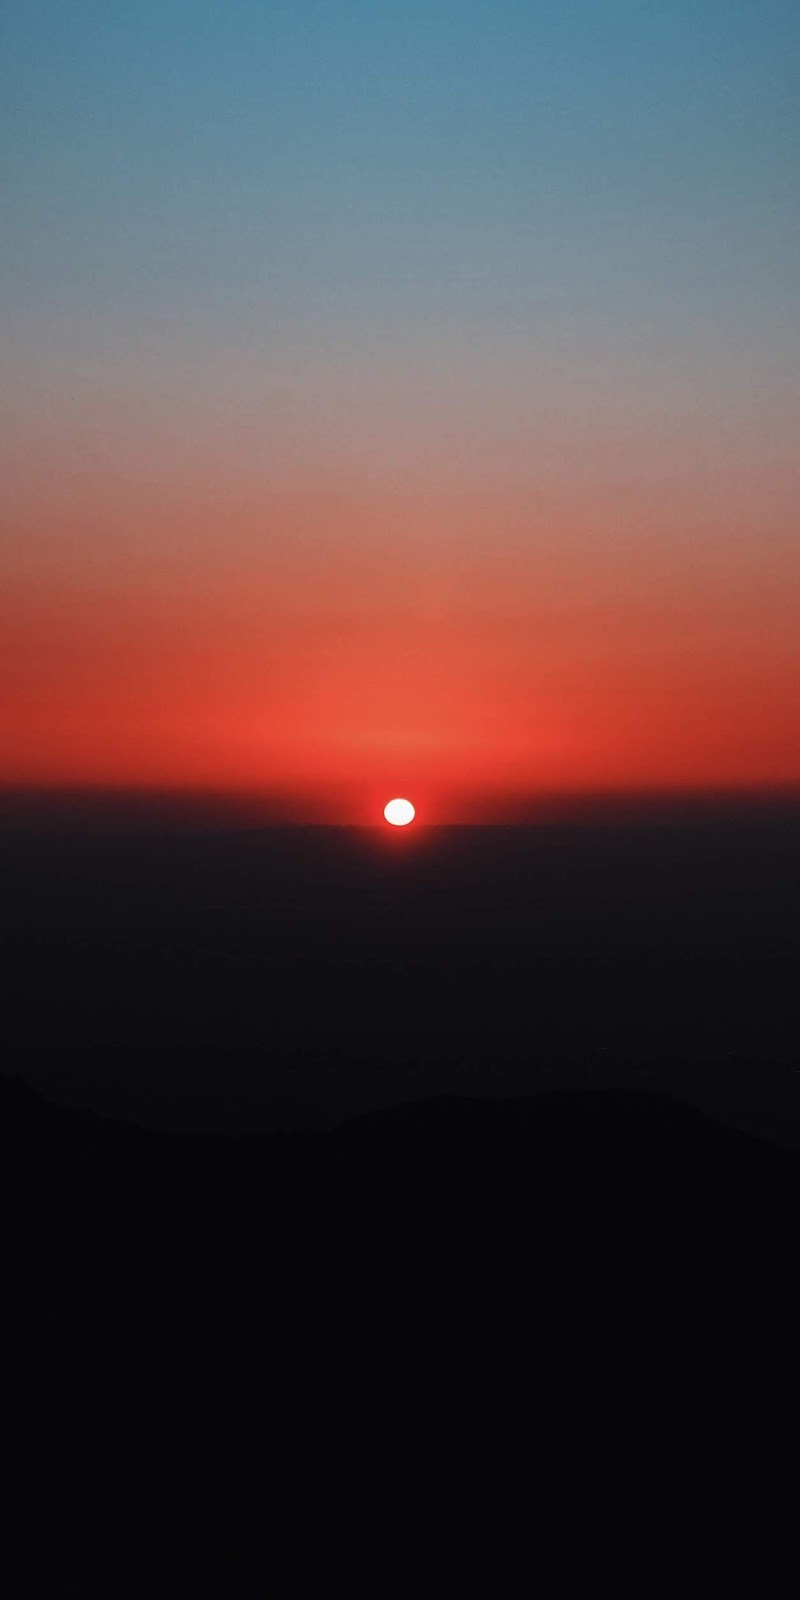 Sunset wallpaper